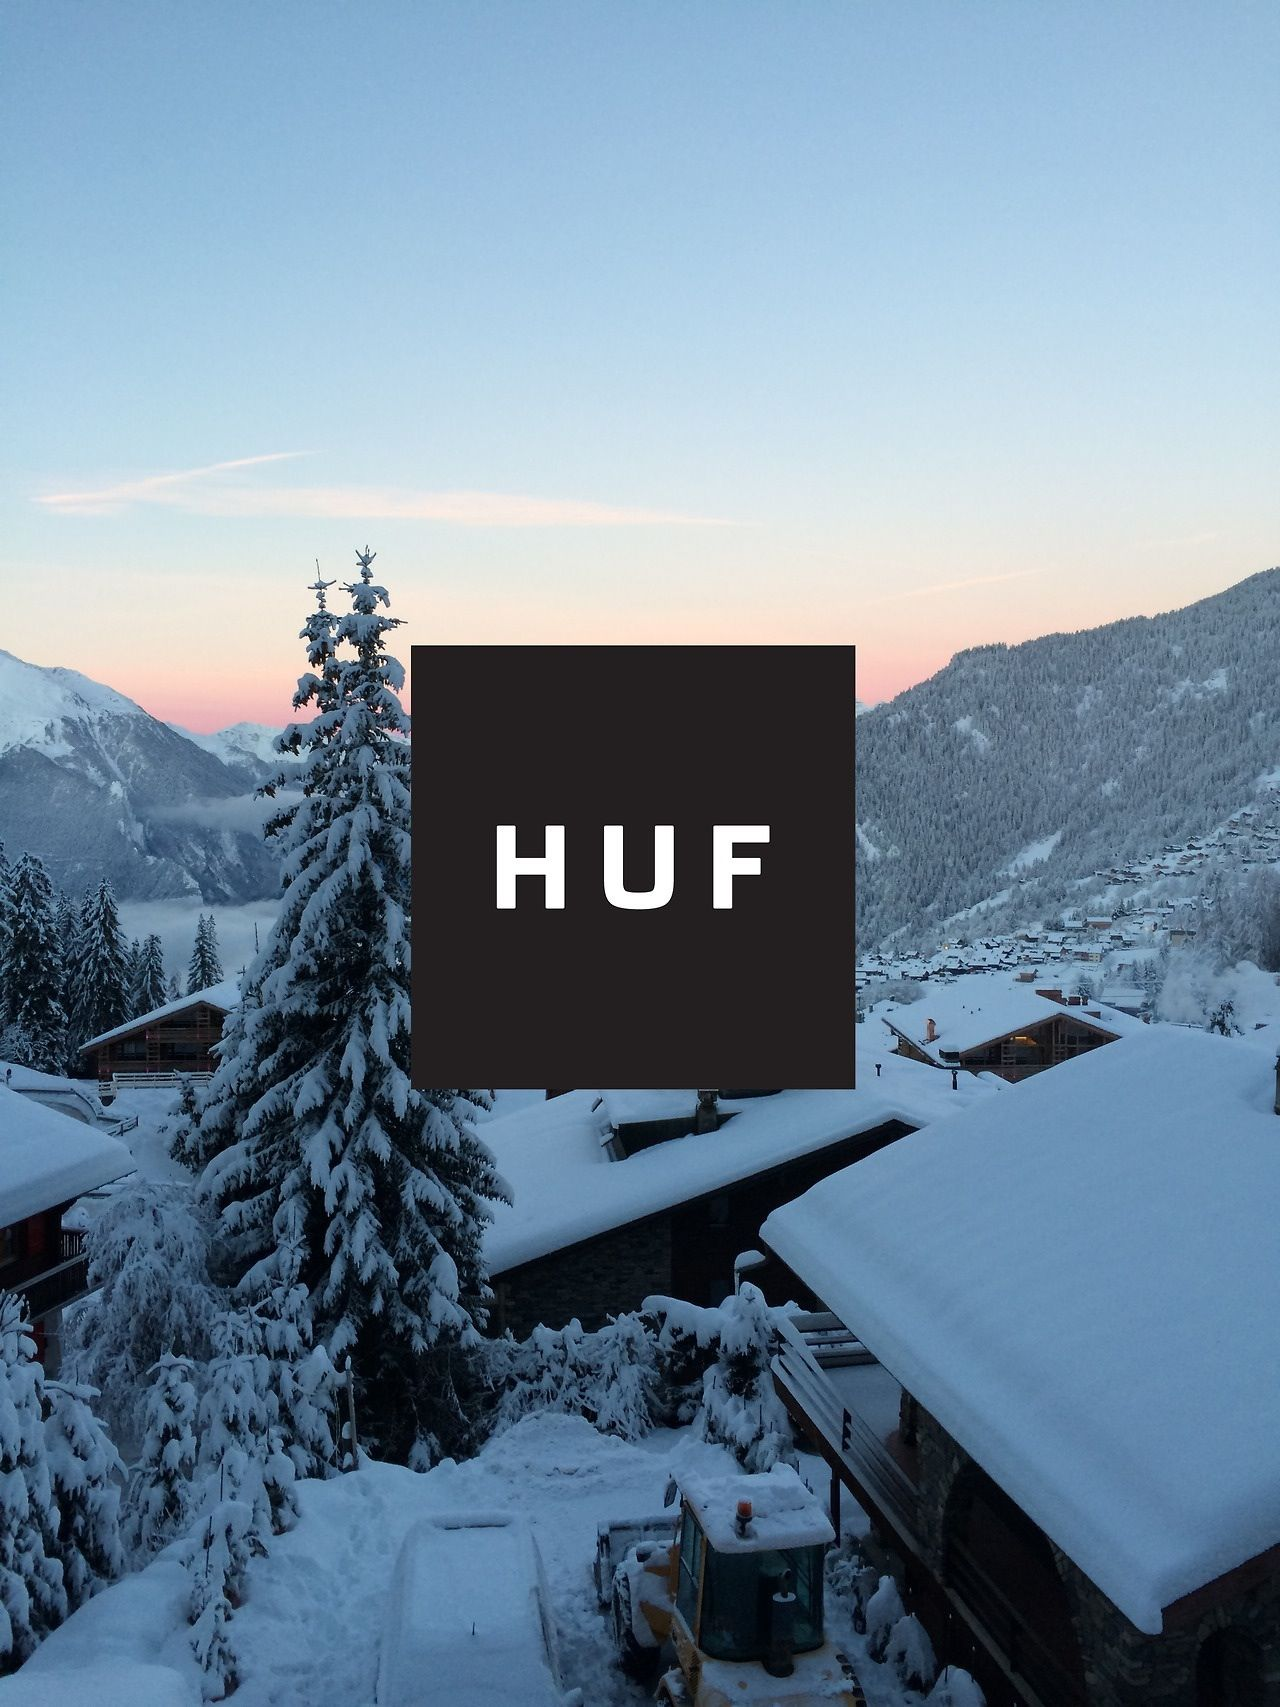 1280x1707 Pin by xzuzq on Wallpers | Pinterest | Huf, Wallpapers ipad and ...